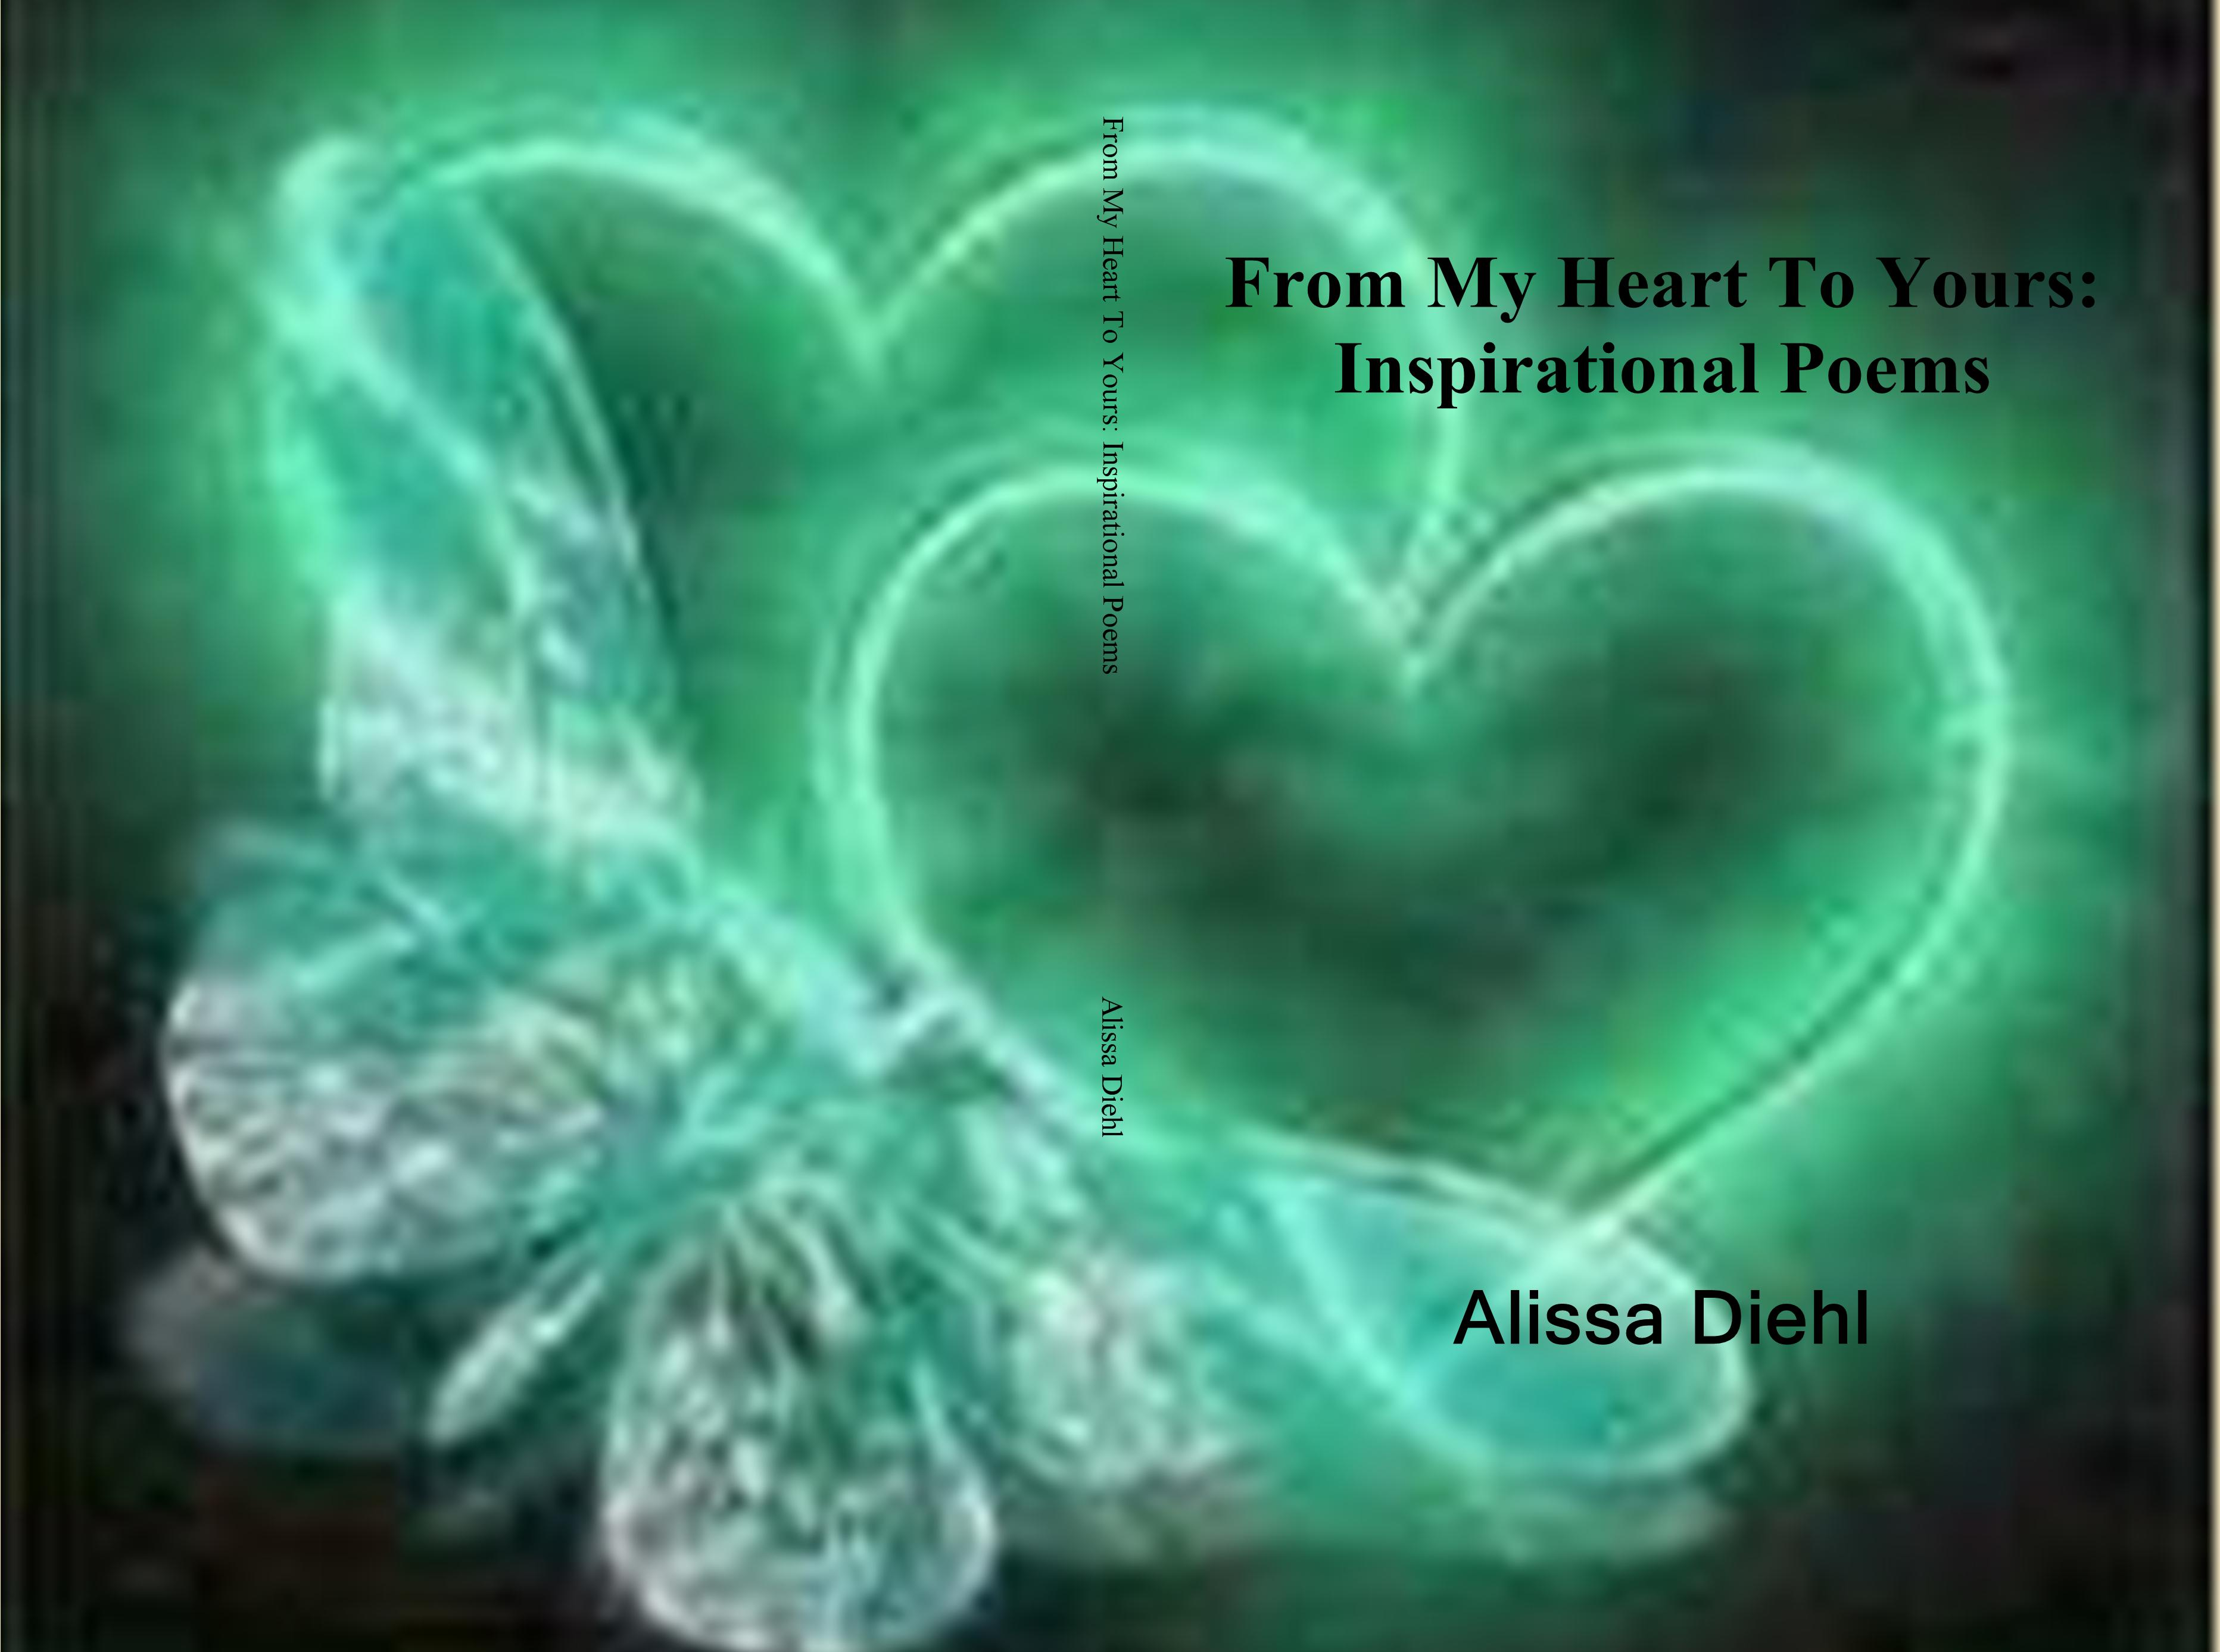 From My Heart To Yours Inspirational Poems By Alissa Diehl 500